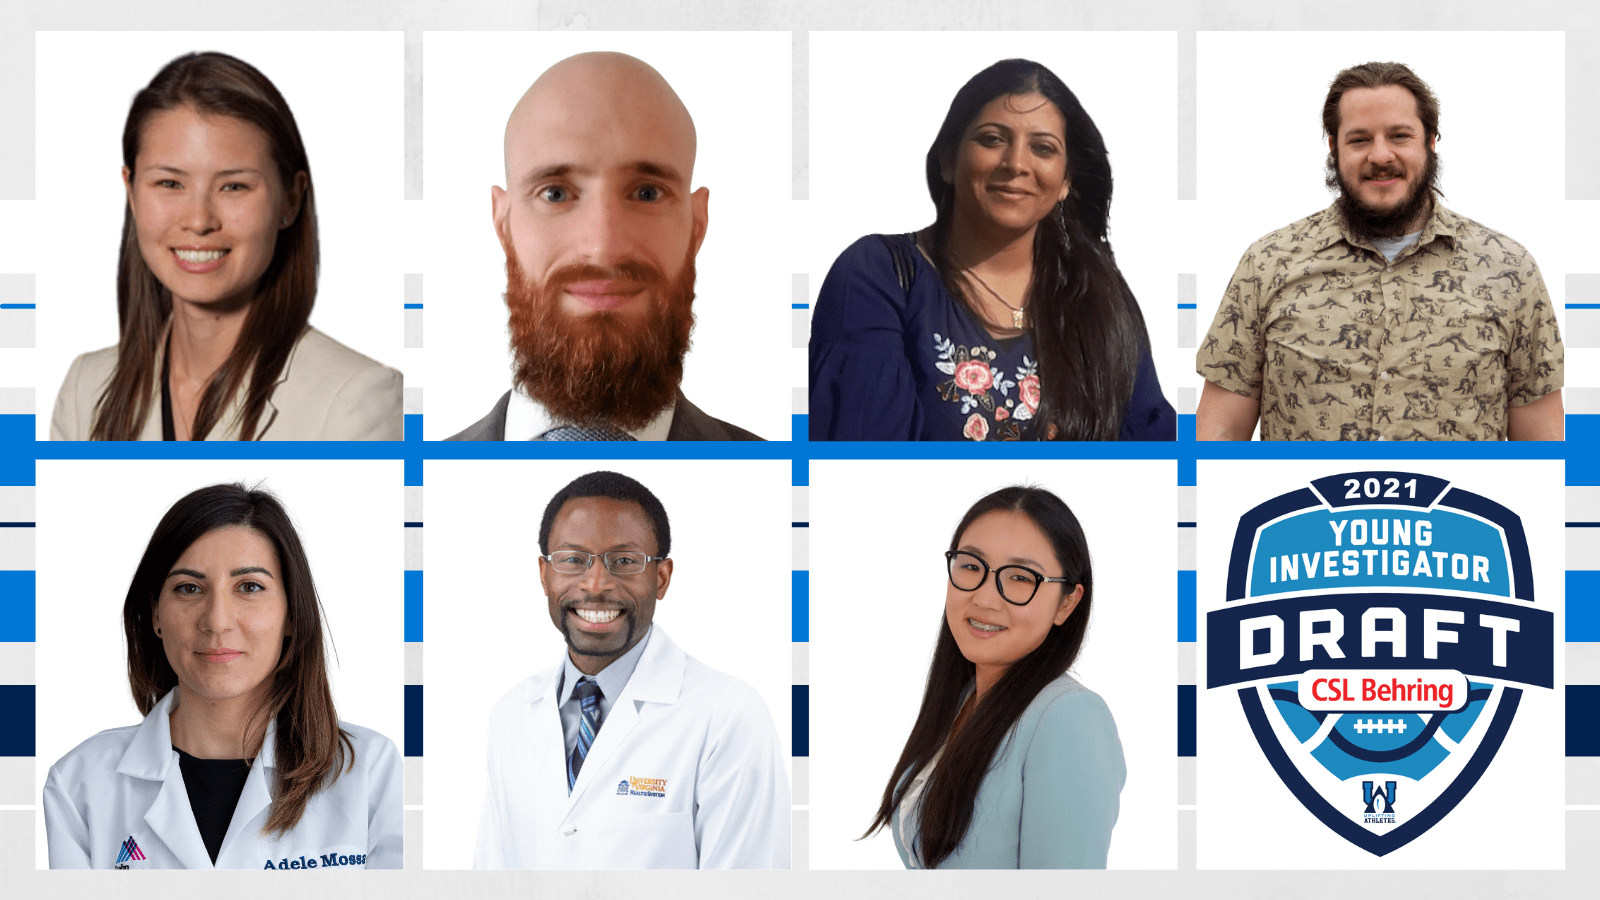 Seven winners of the 2021 Young Investigator Draft